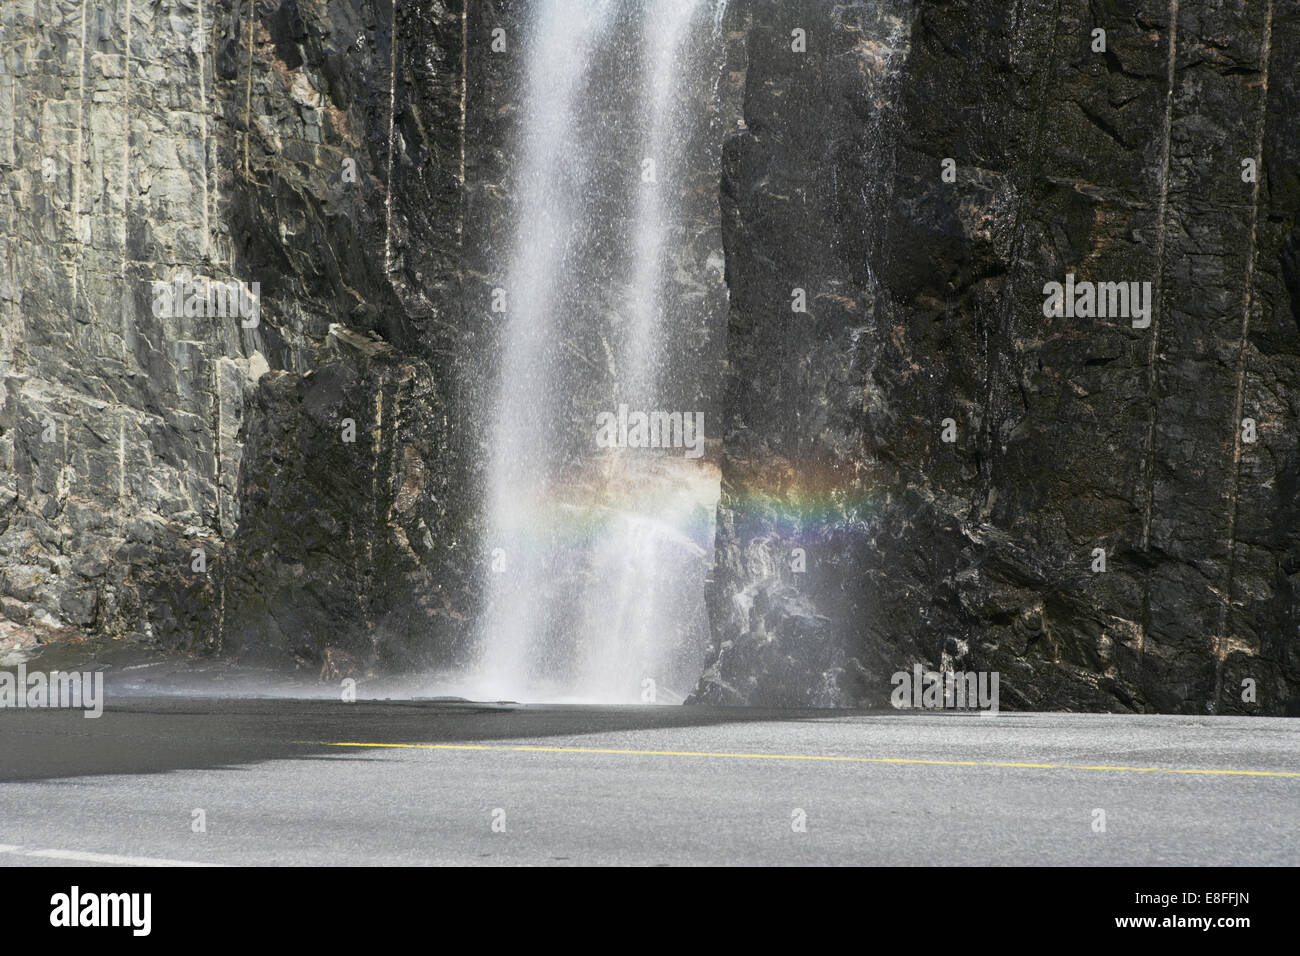 Rainbow in flowing water by road - Stock Image